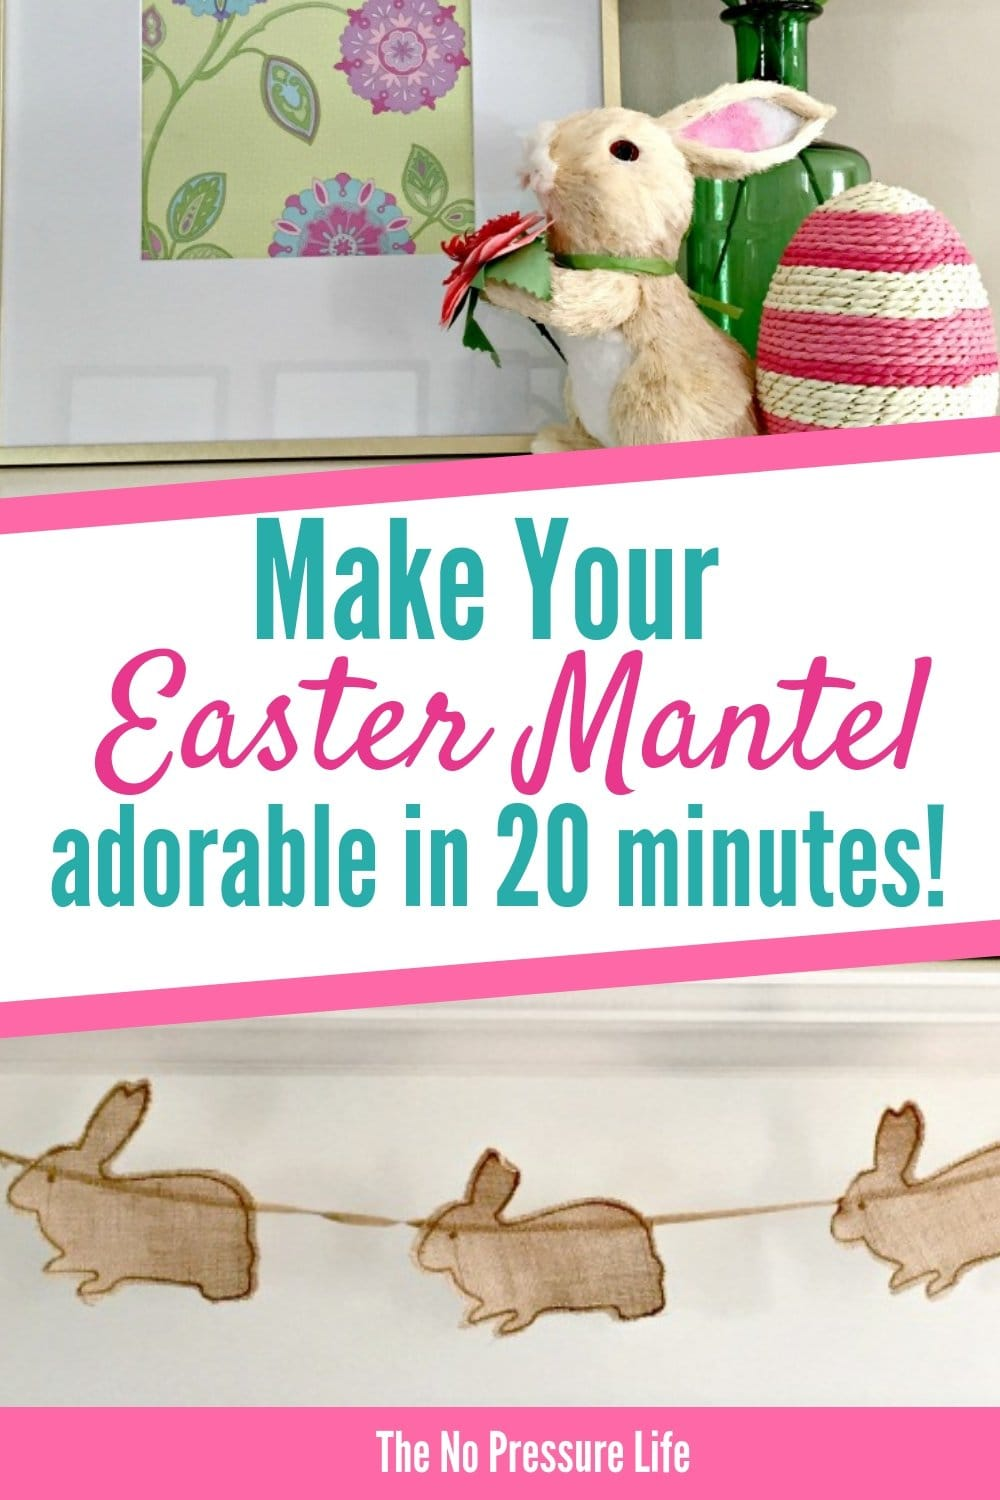 DIY Easter Mantel Decorating Ideas for Spring